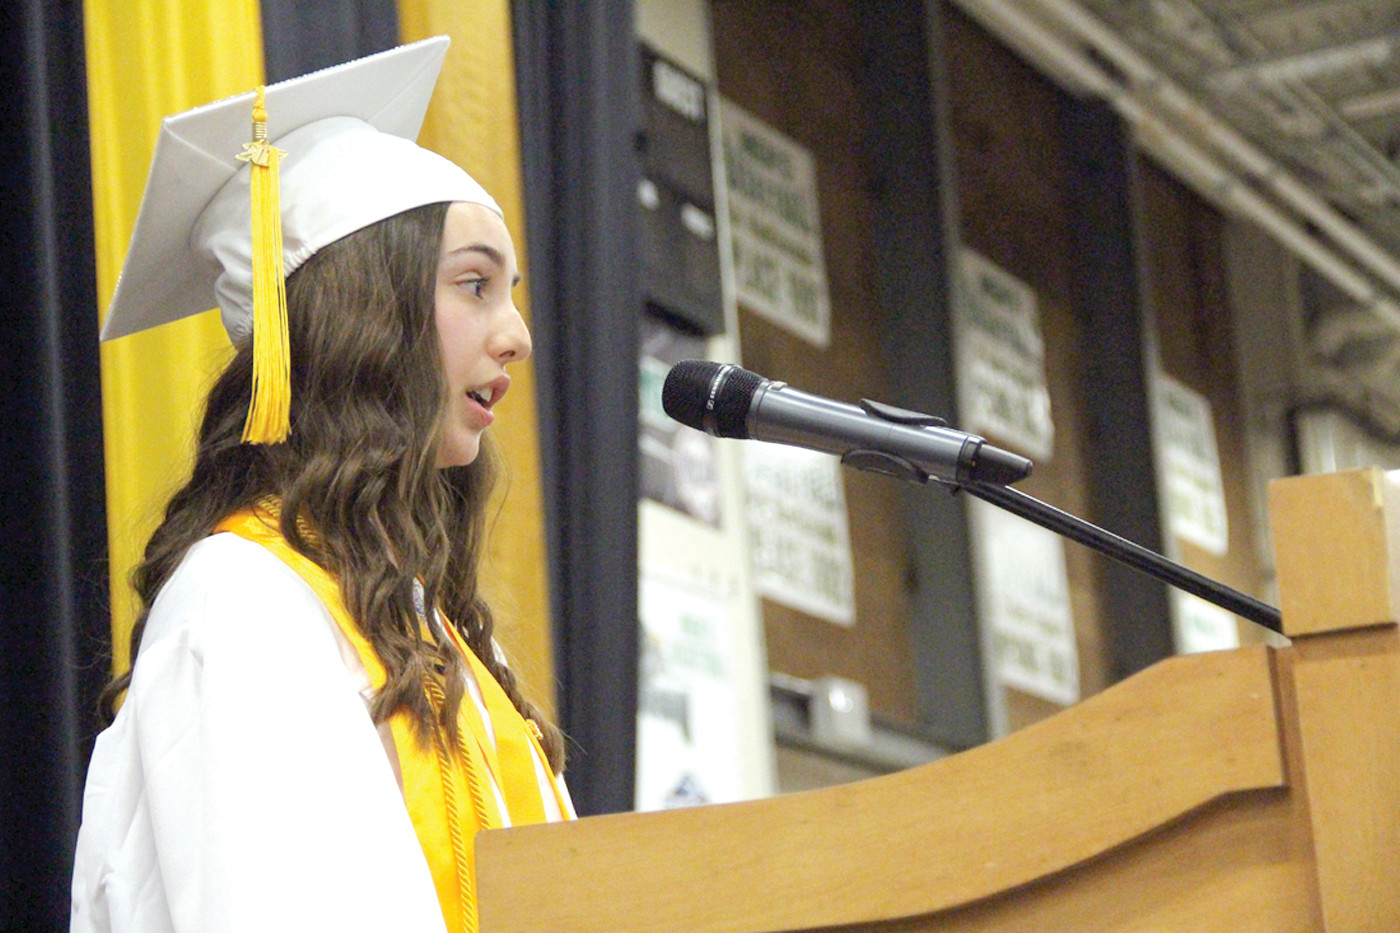 Salutatorian Chelsea Faith Lavallee spoke about how her classmates responded with the consolidation of Vets students.